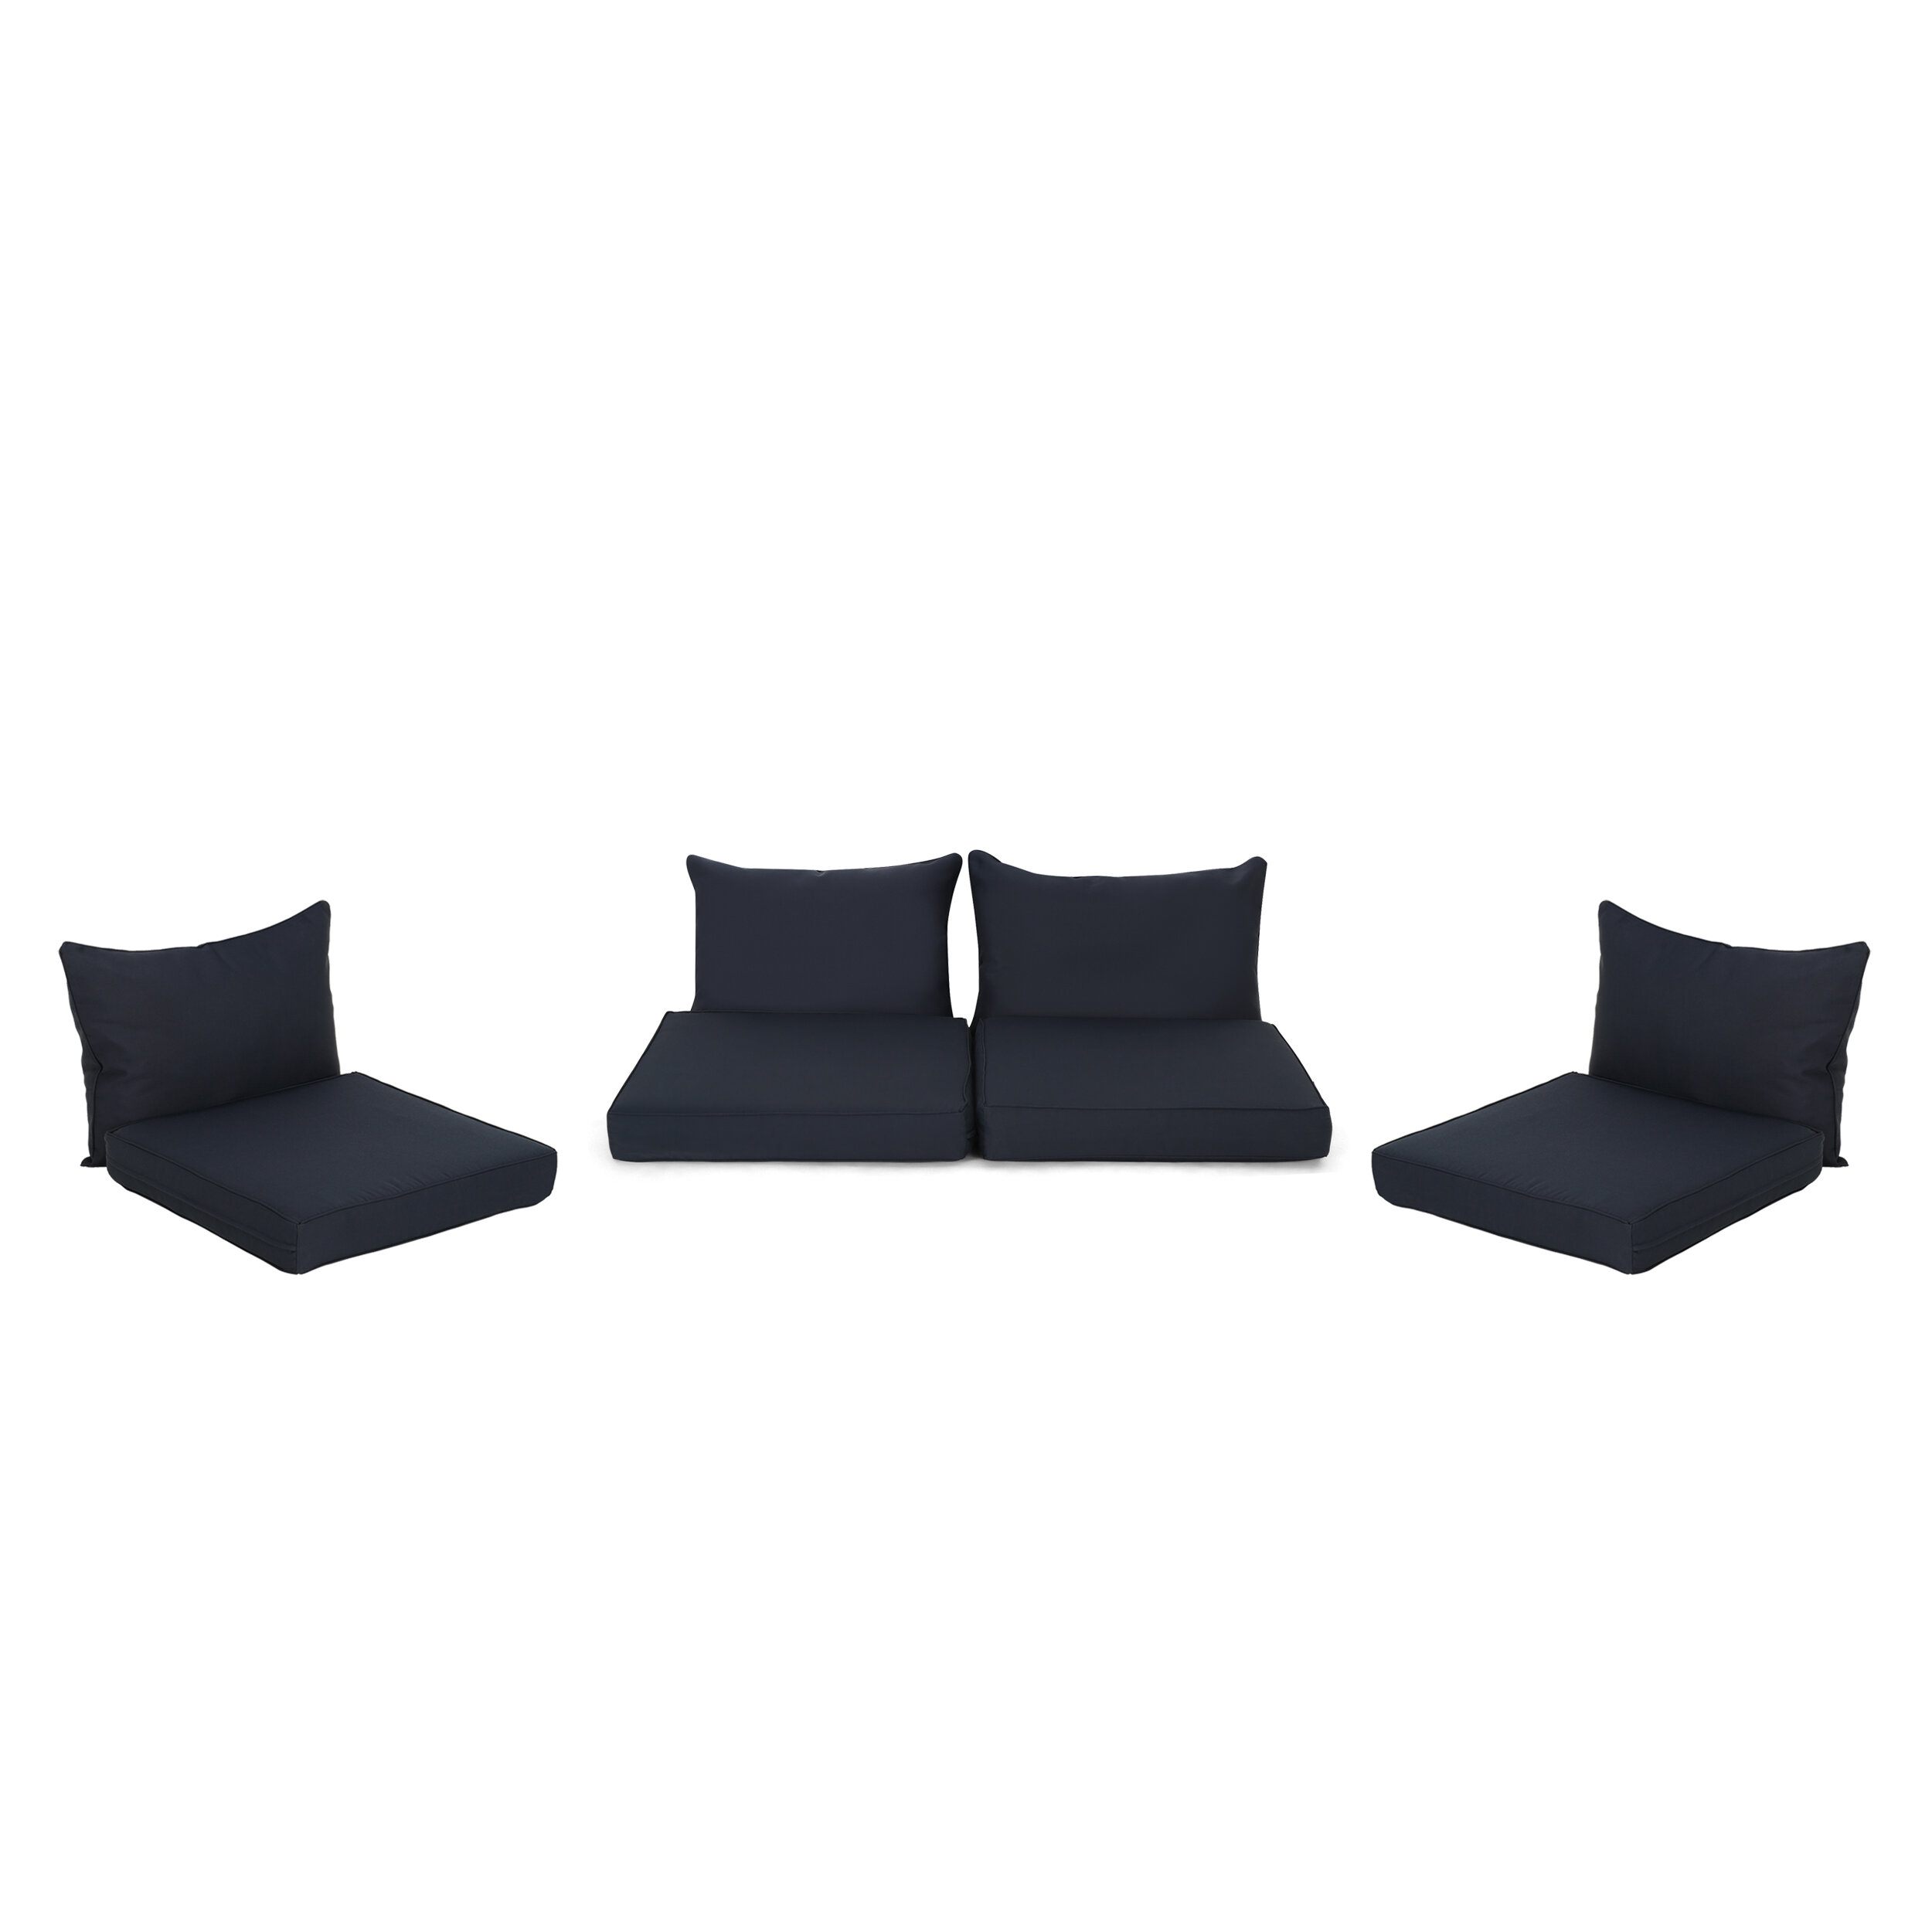 Amazing Outdoor Loveseat And Lounge Chair Cushion Creativecarmelina Interior Chair Design Creativecarmelinacom